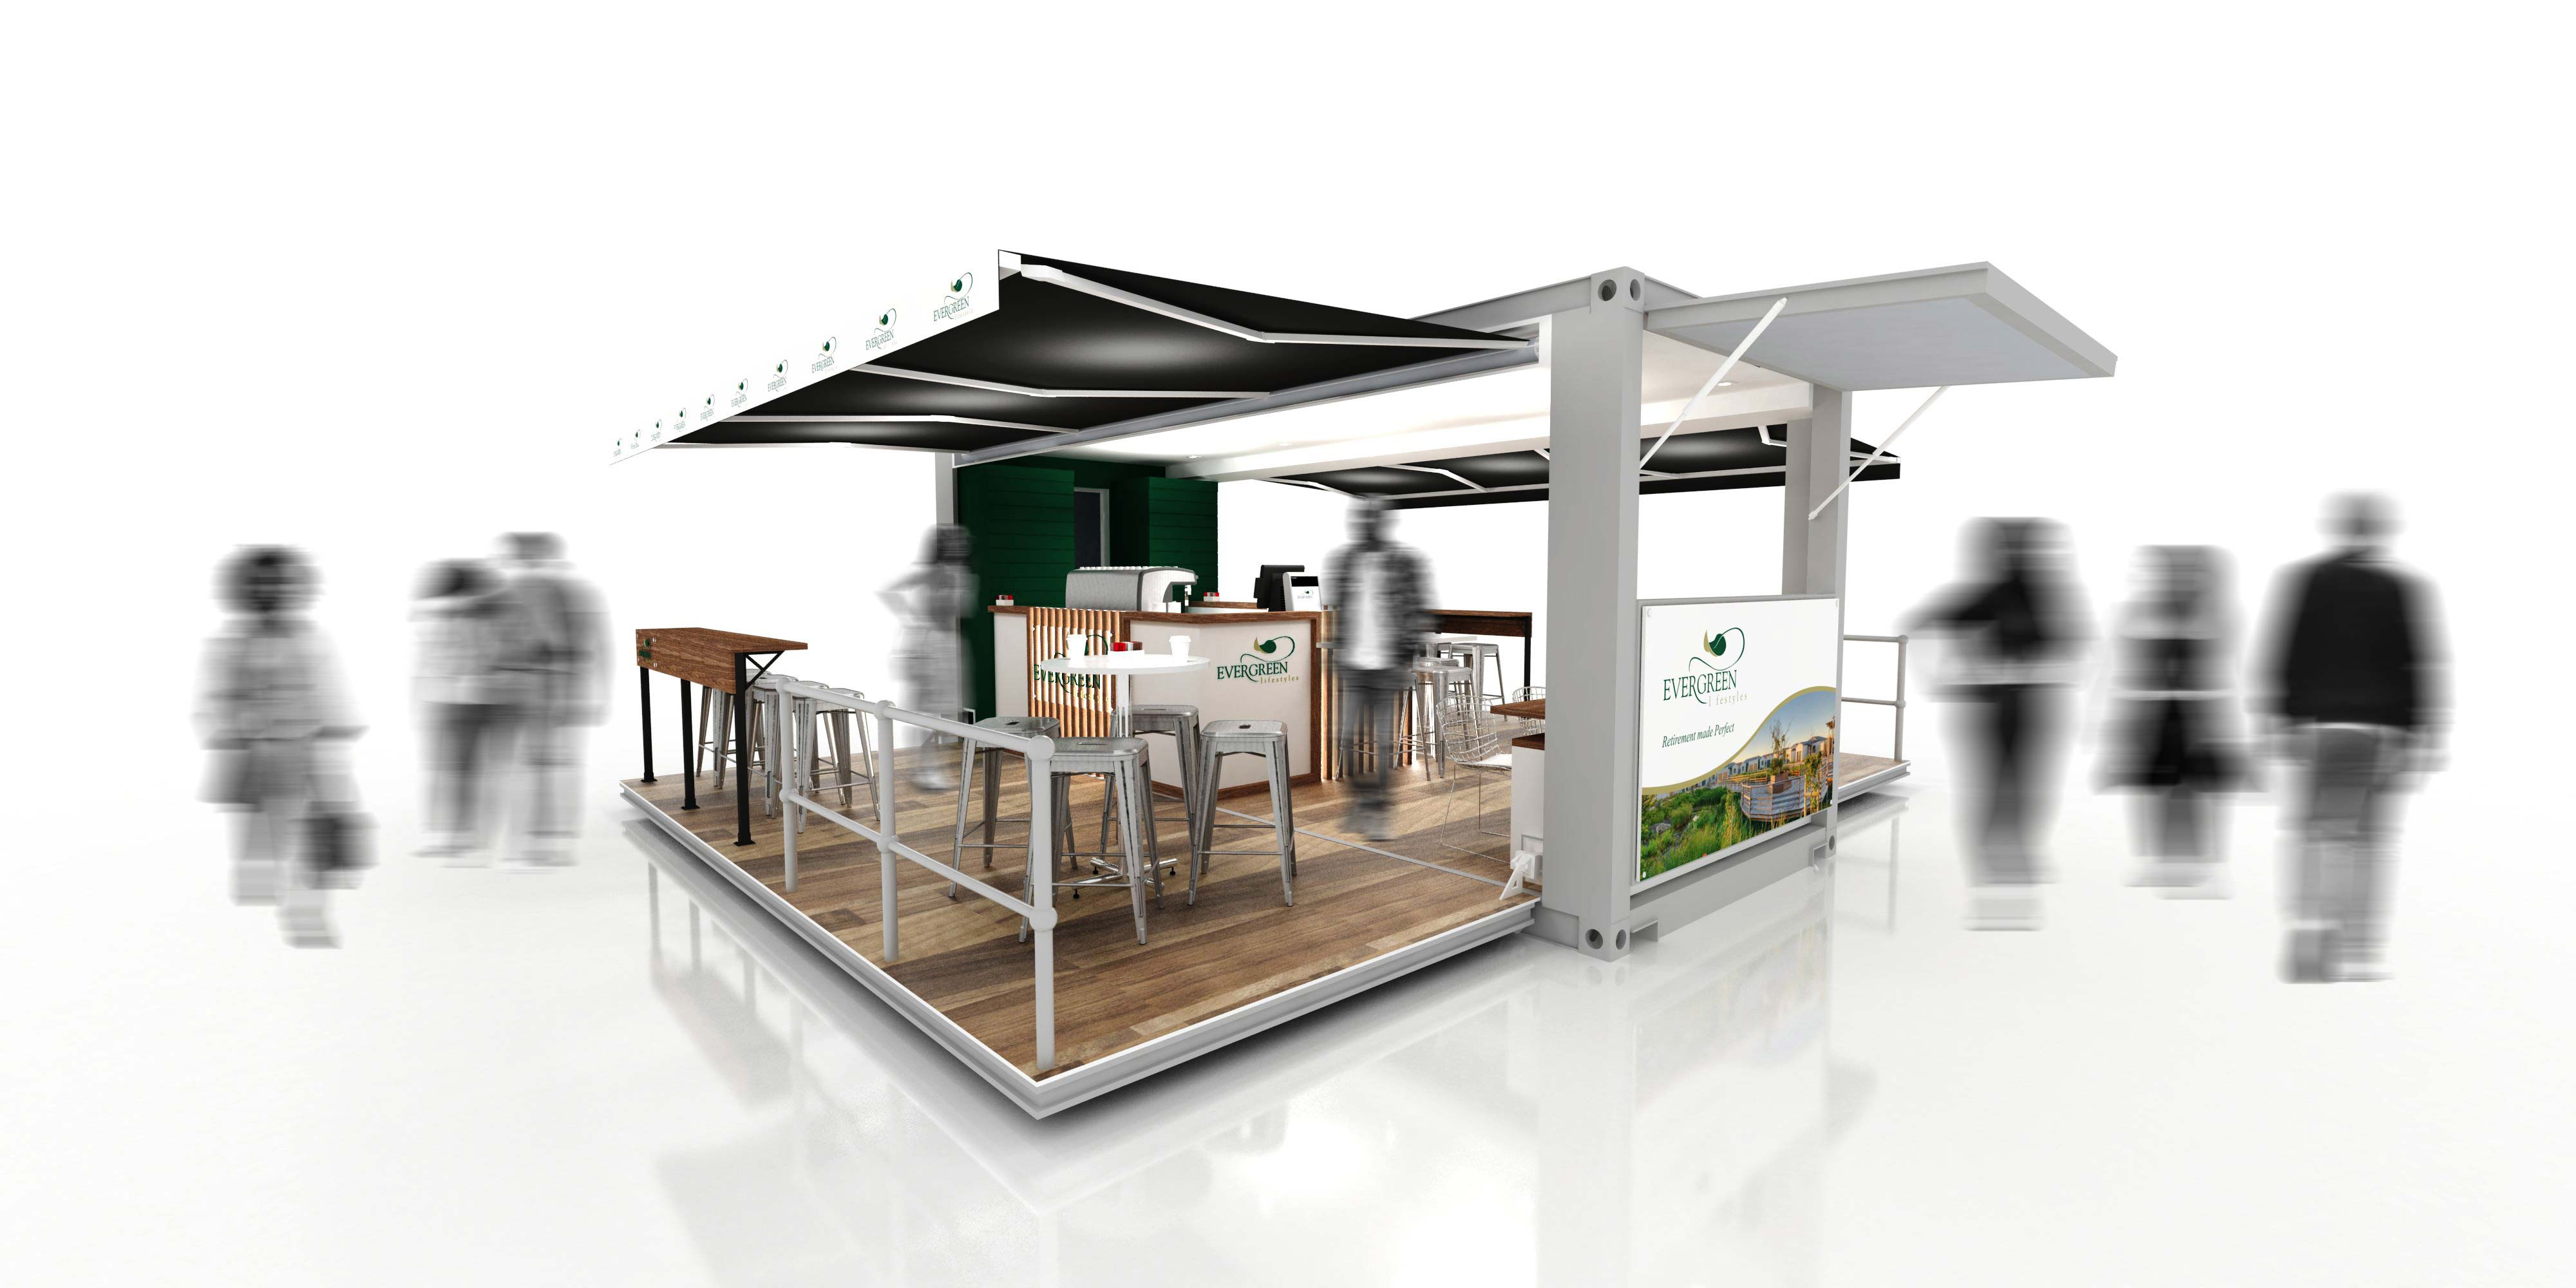 Shipping container conversions cape town used 10ft 20ft and 40ft shipping container for sale - Container homes cape town ...